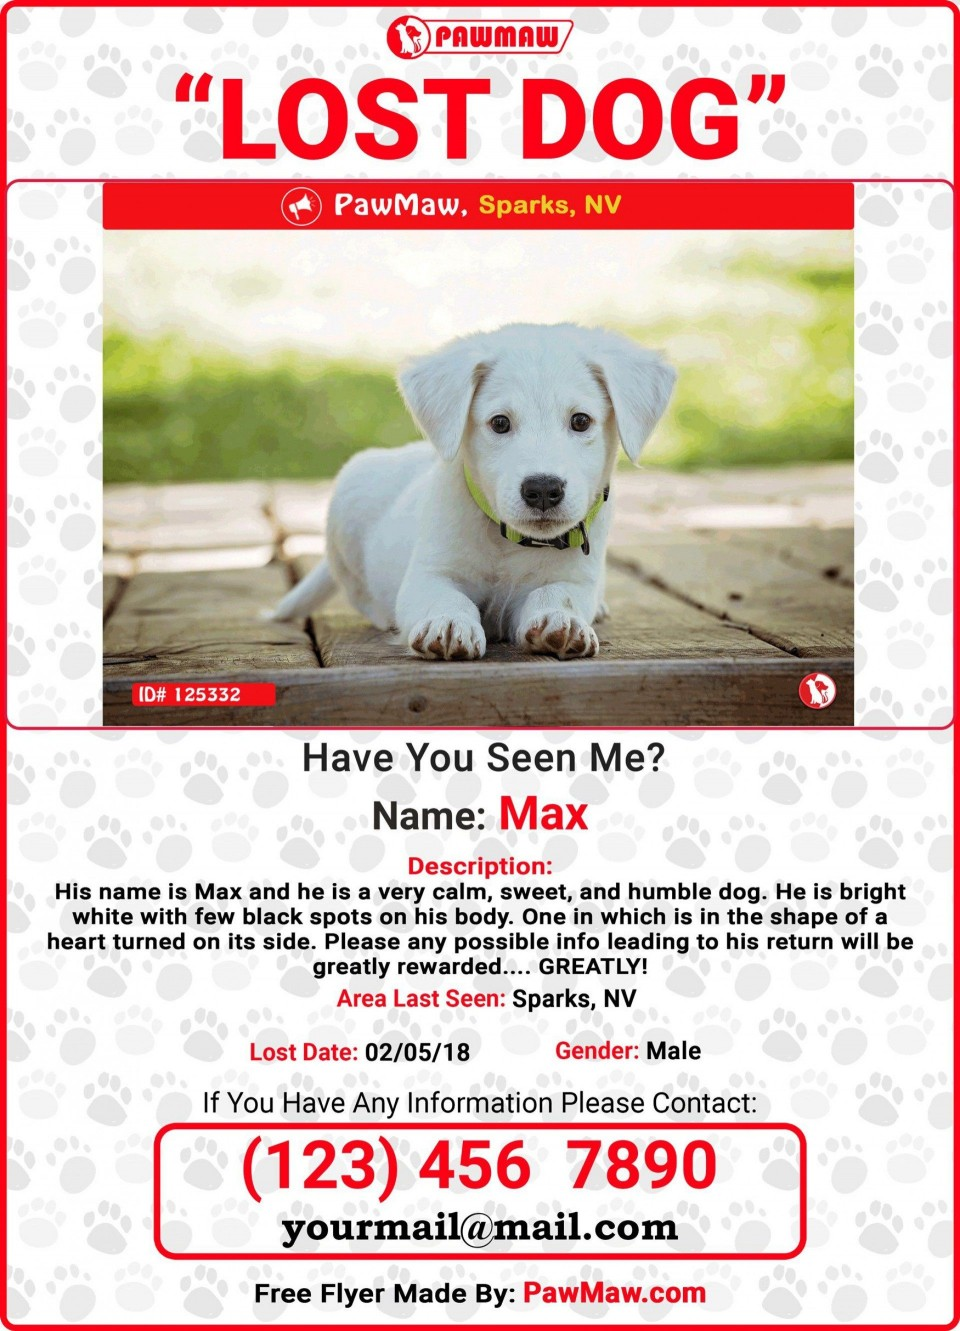 009 Unique Missing Dog Flyer Template Sample  Lost Poster960